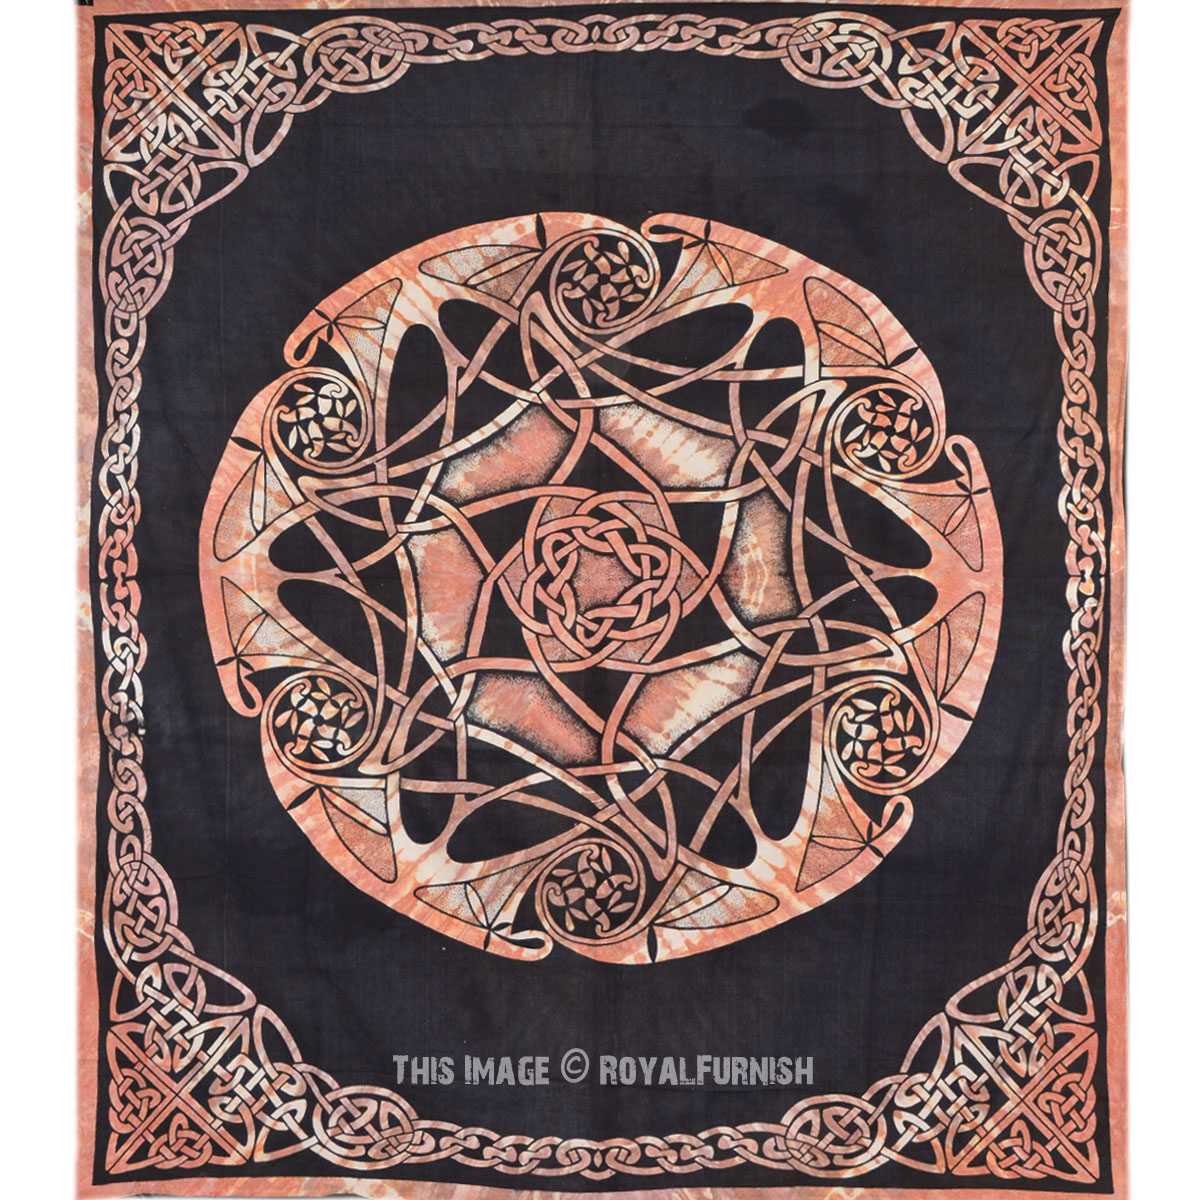 Black Celtic Star Knot Mandala Tapestry Wall Hanging